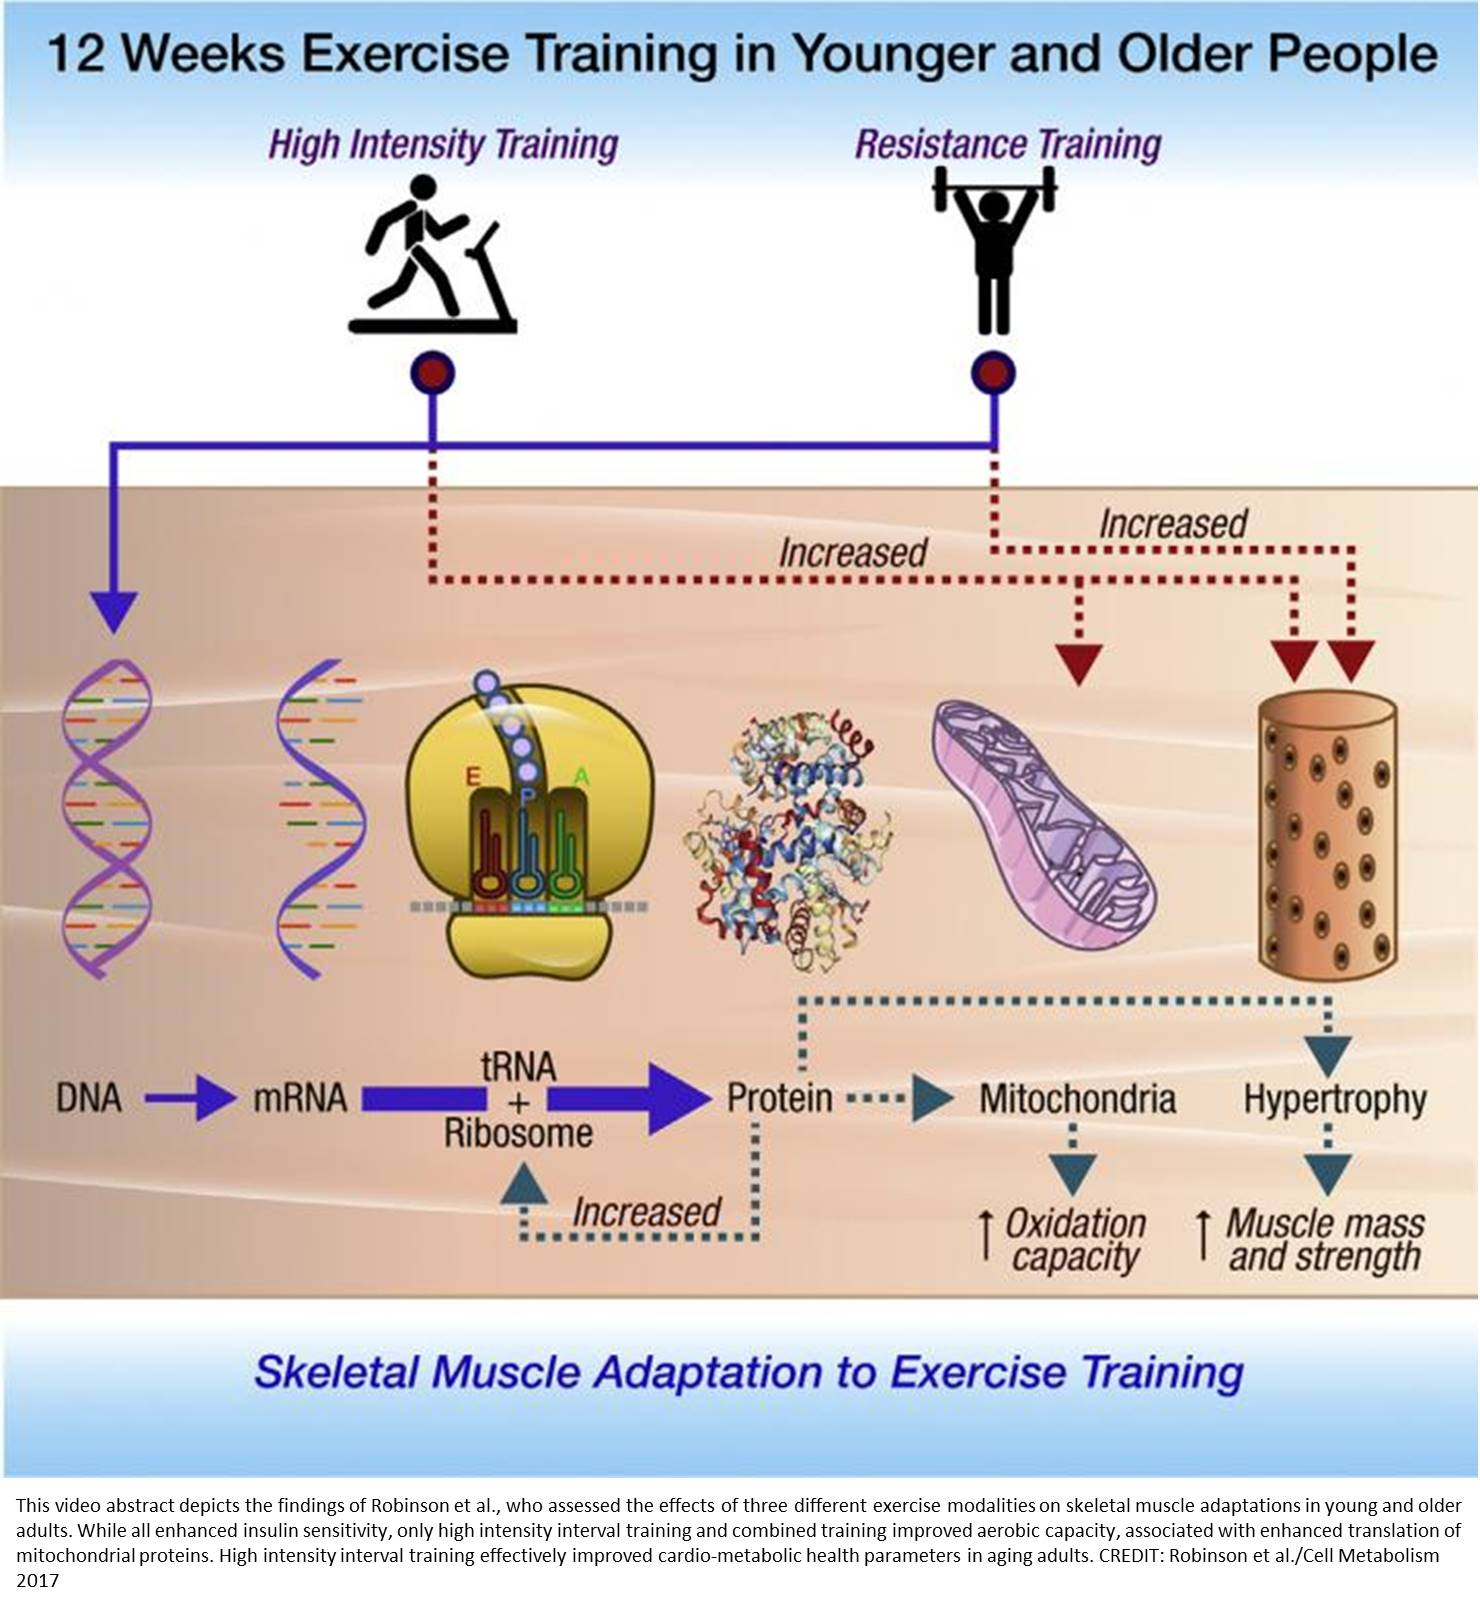 Interval training exercise helps your mitochondria stave off old age